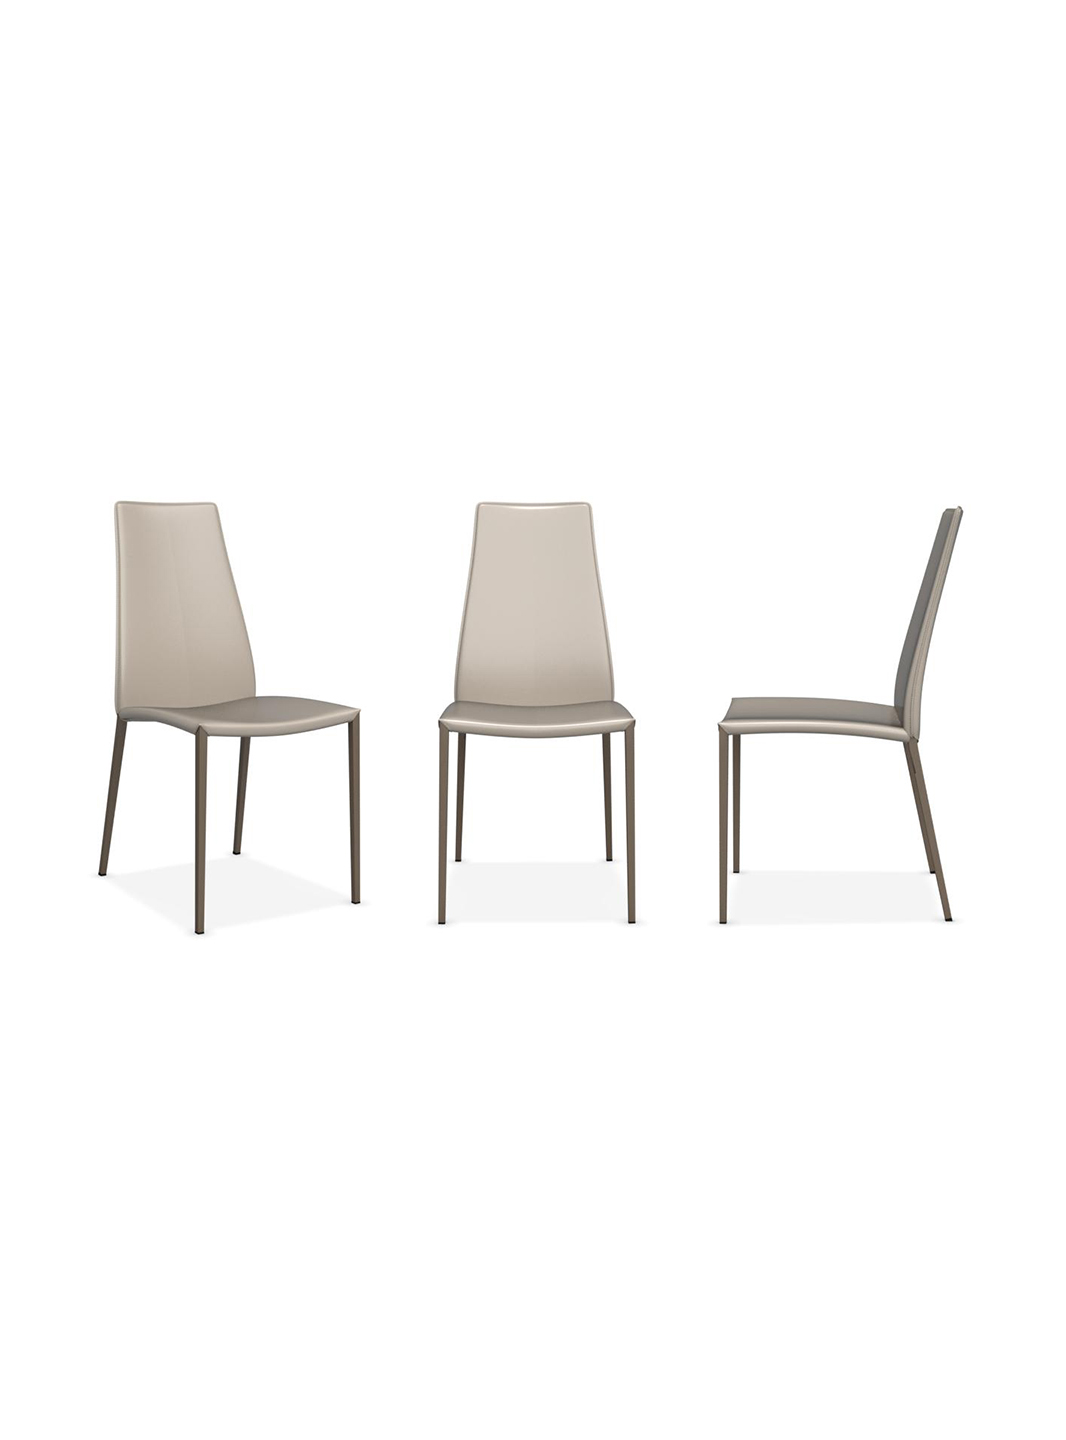 Aida chaise calligaris cs 1452 mariette clermont for Calligaris soldes